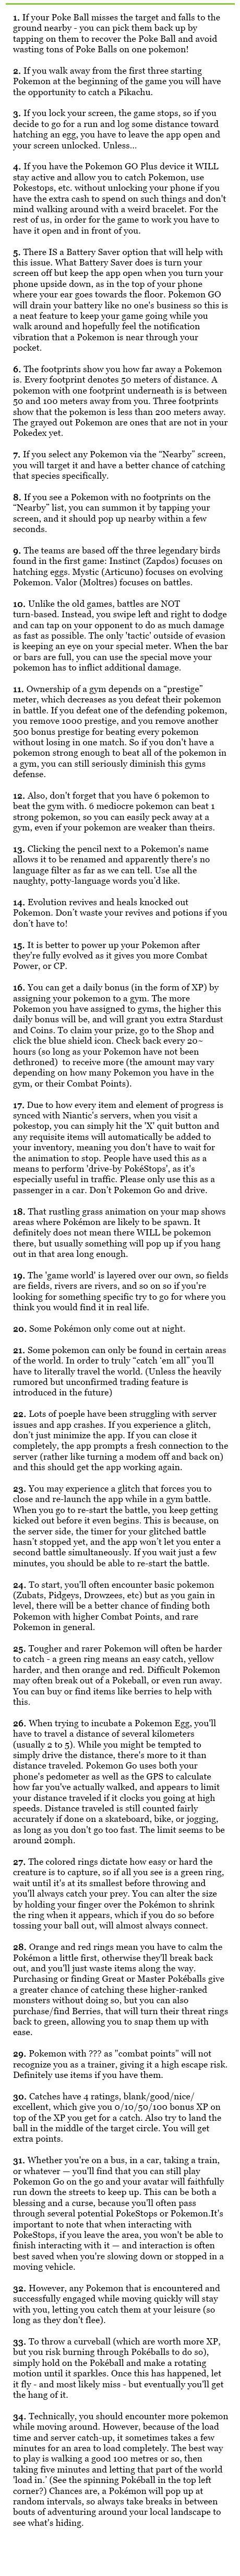 Pokemon Go - Pro Tips